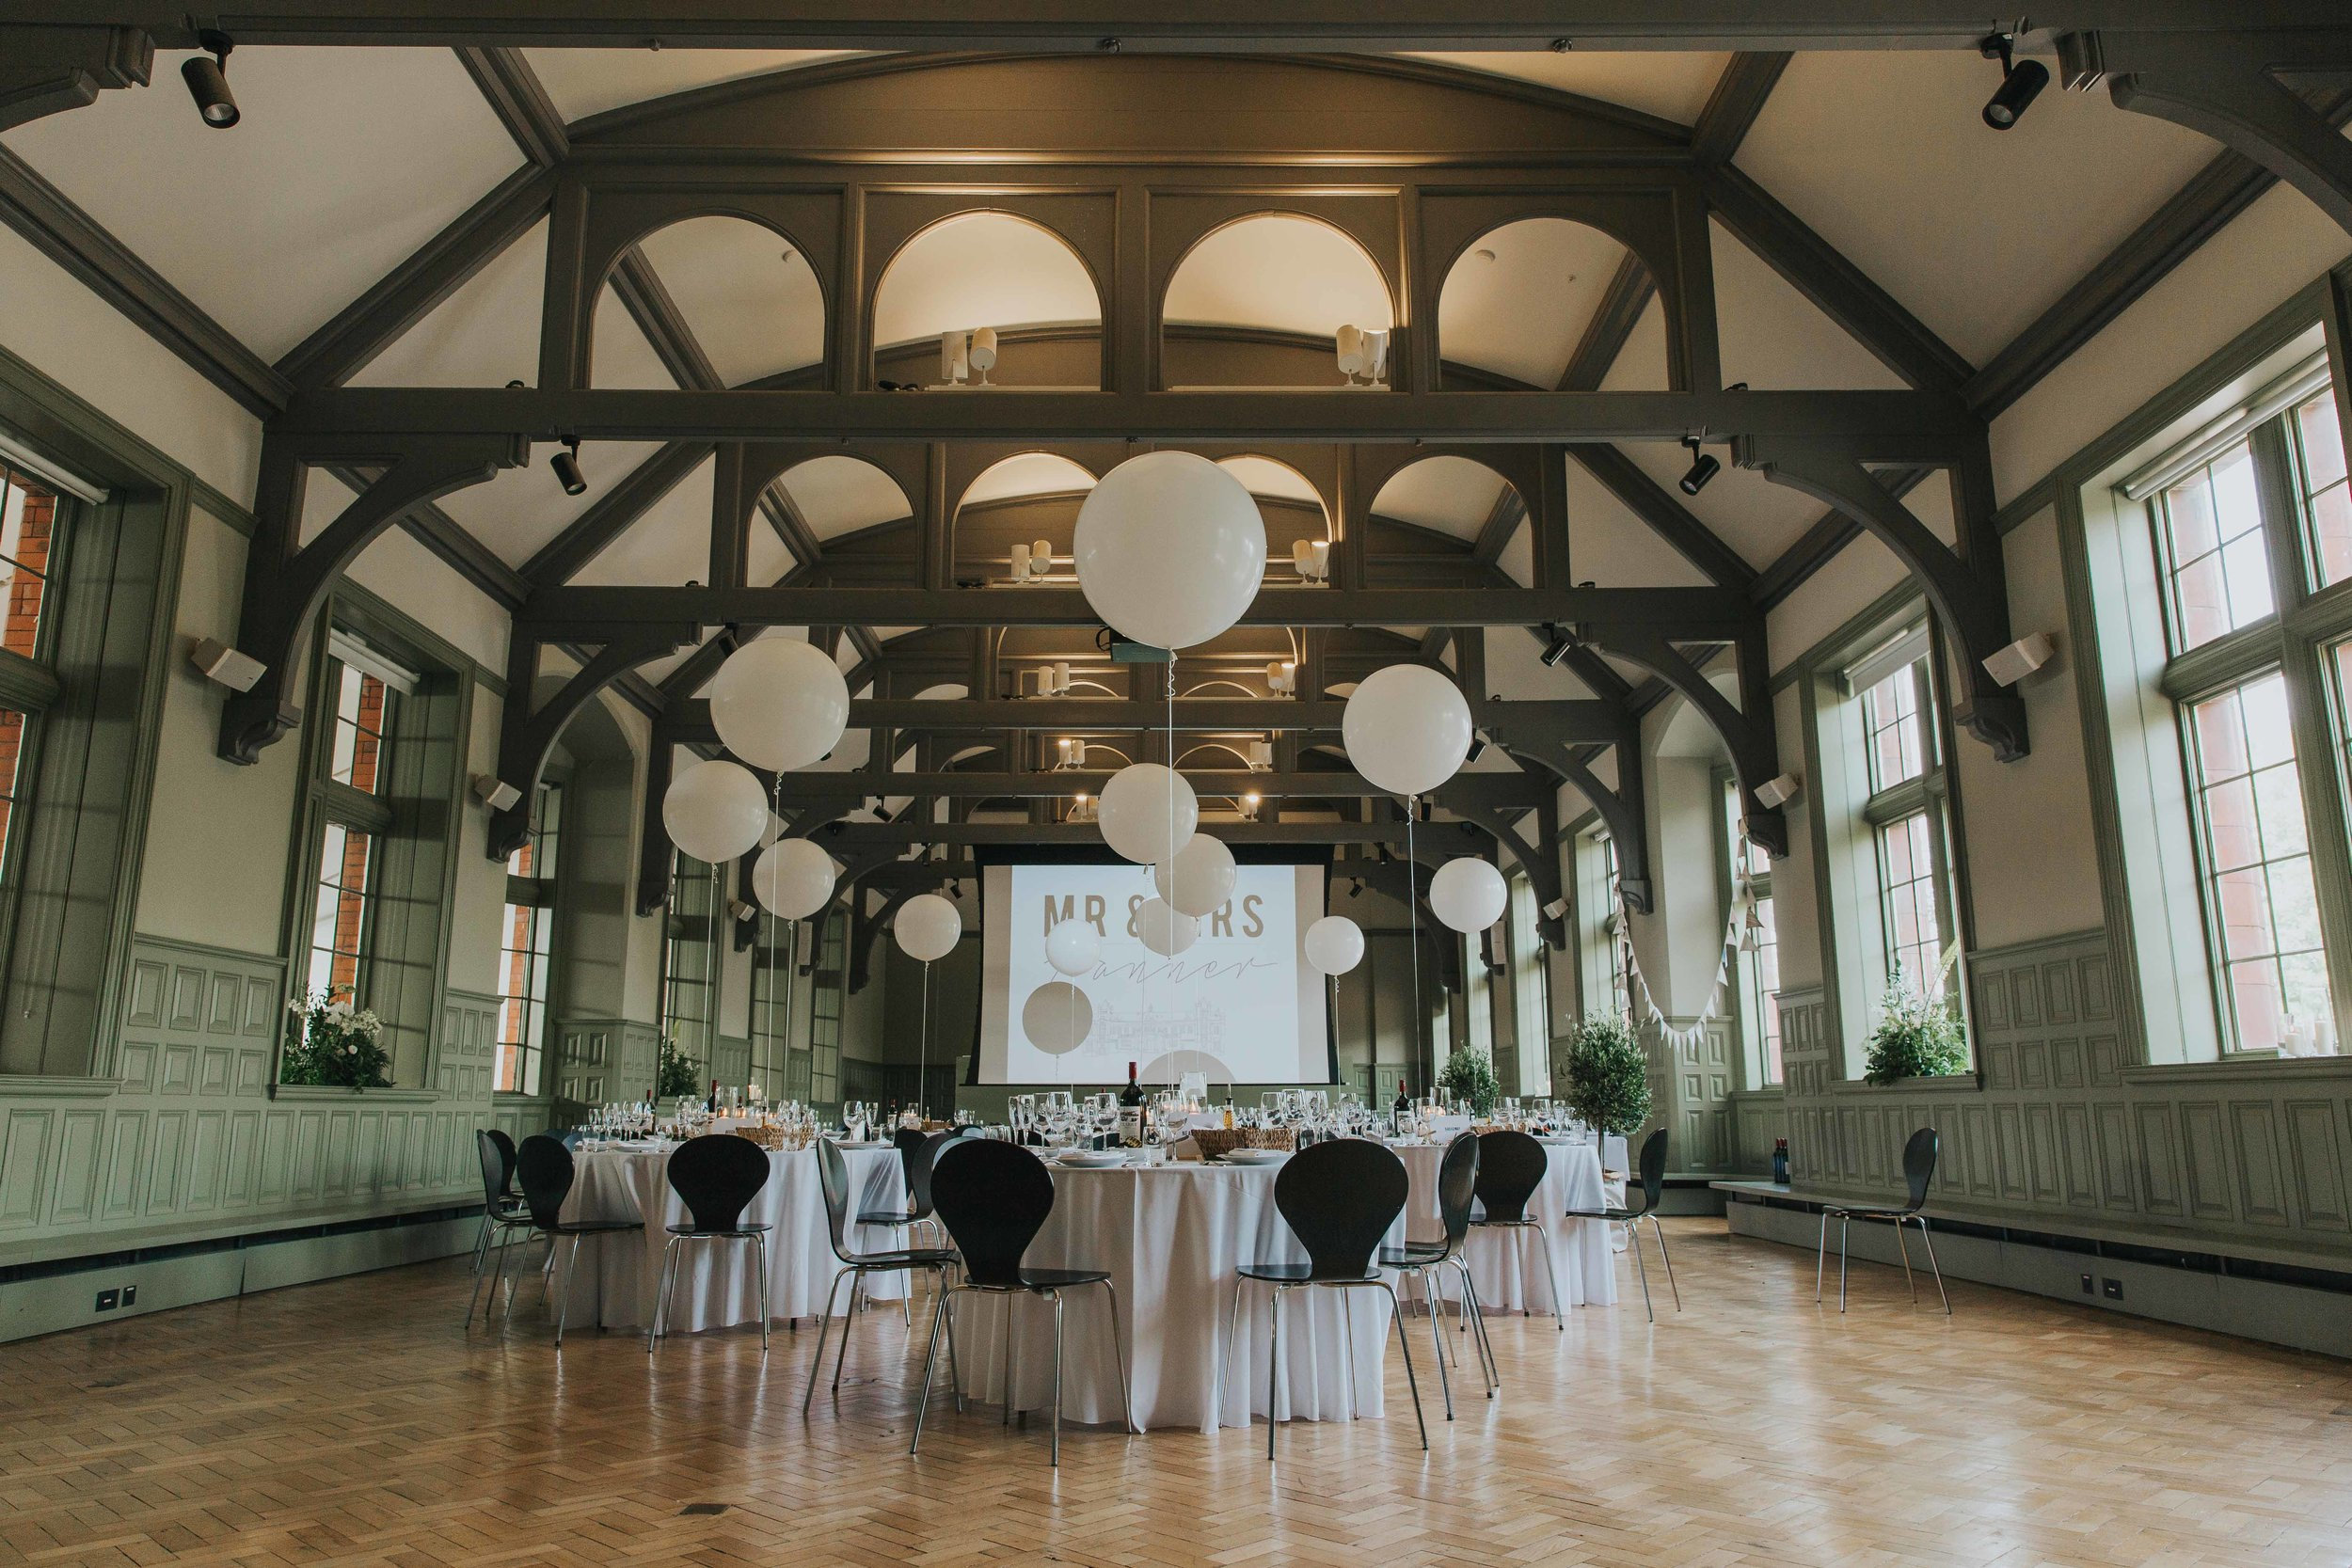 The Whitworth Art Gallery Manchester wedding reception room